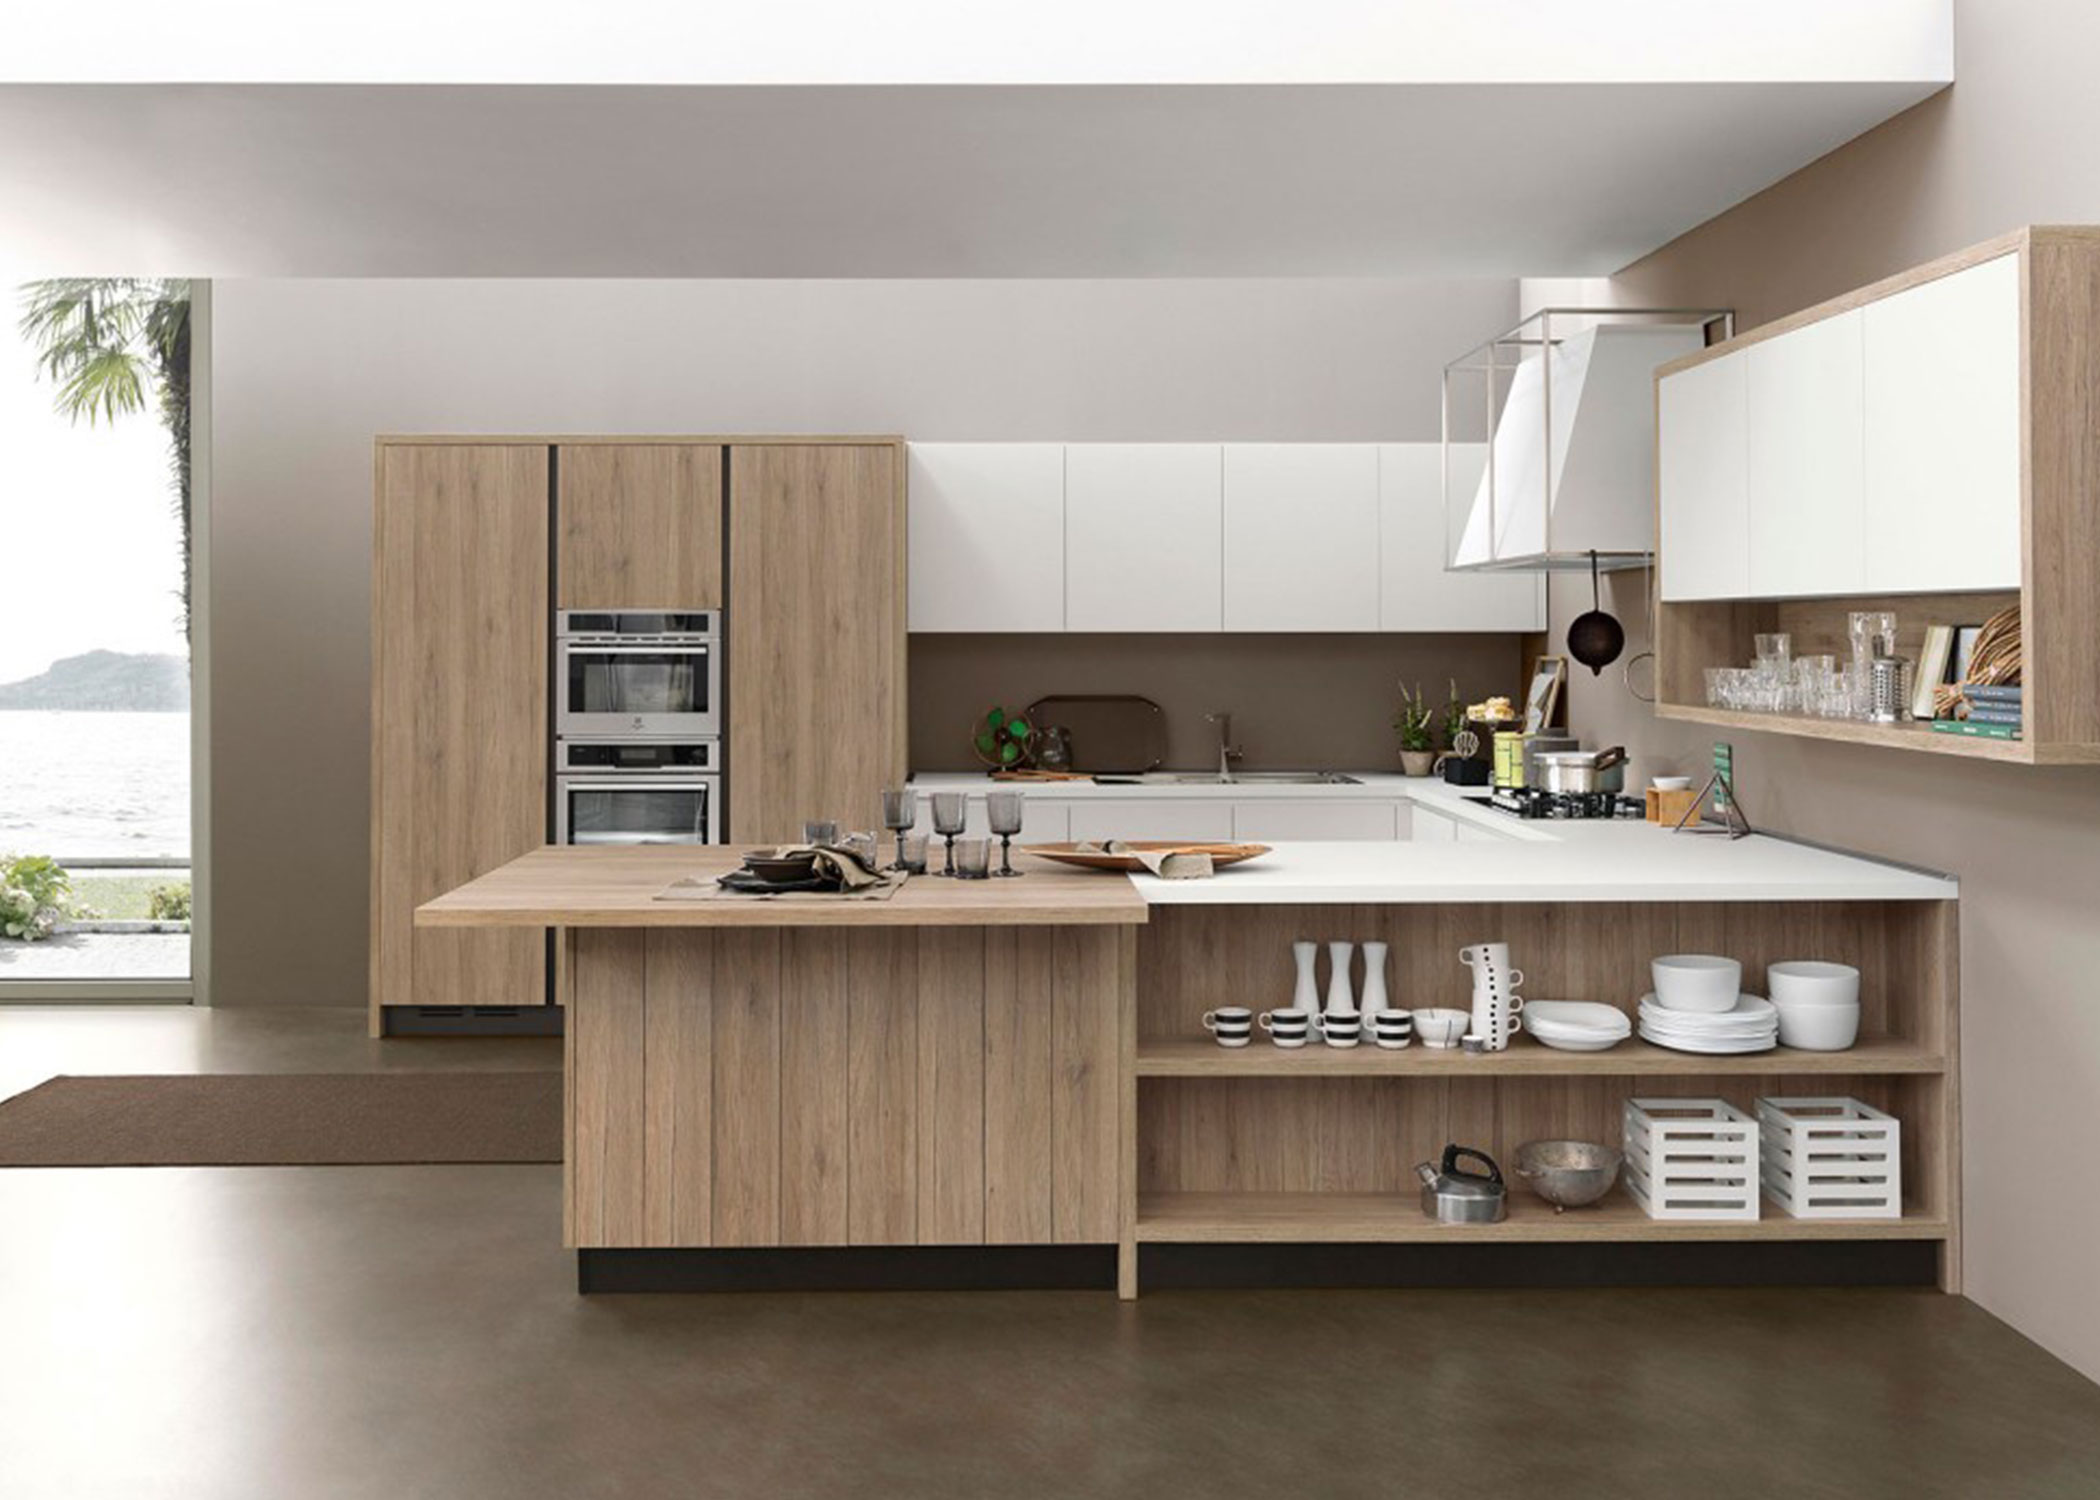 M.A.H.Y. Khoory Kitchens